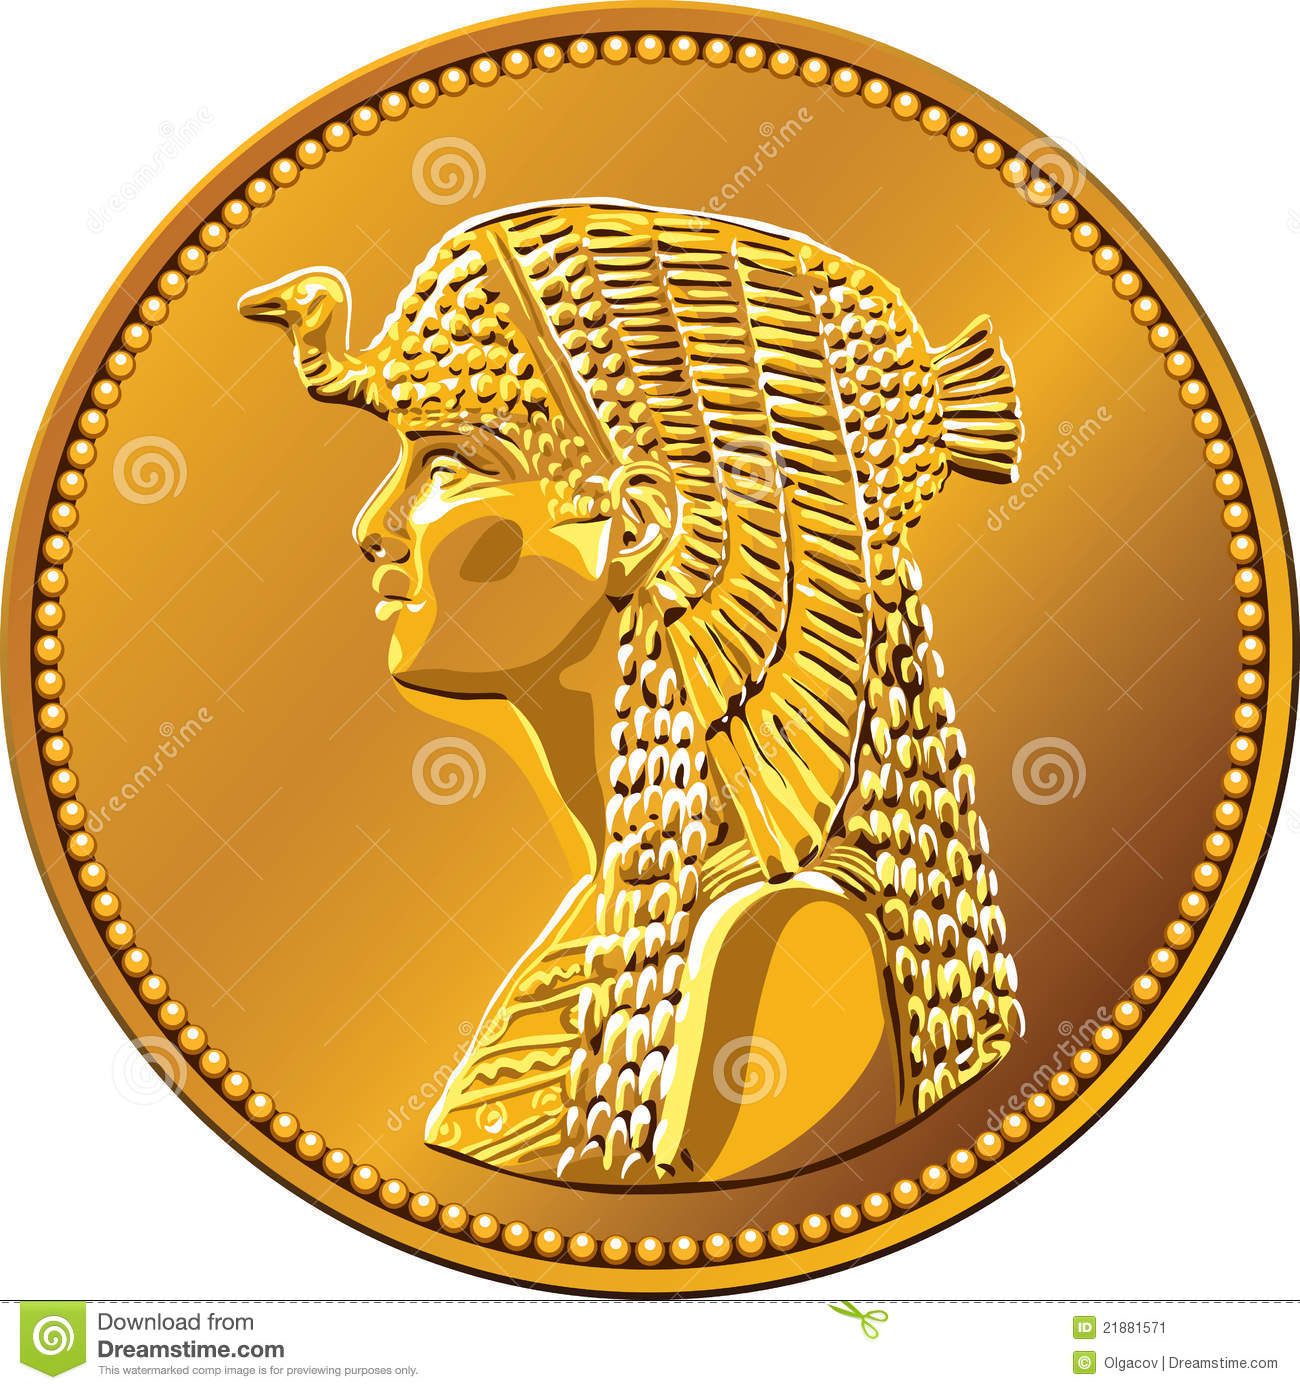 golden stock achievement with gold on isolated illustration plate vector background white cartoon image egyptian mural